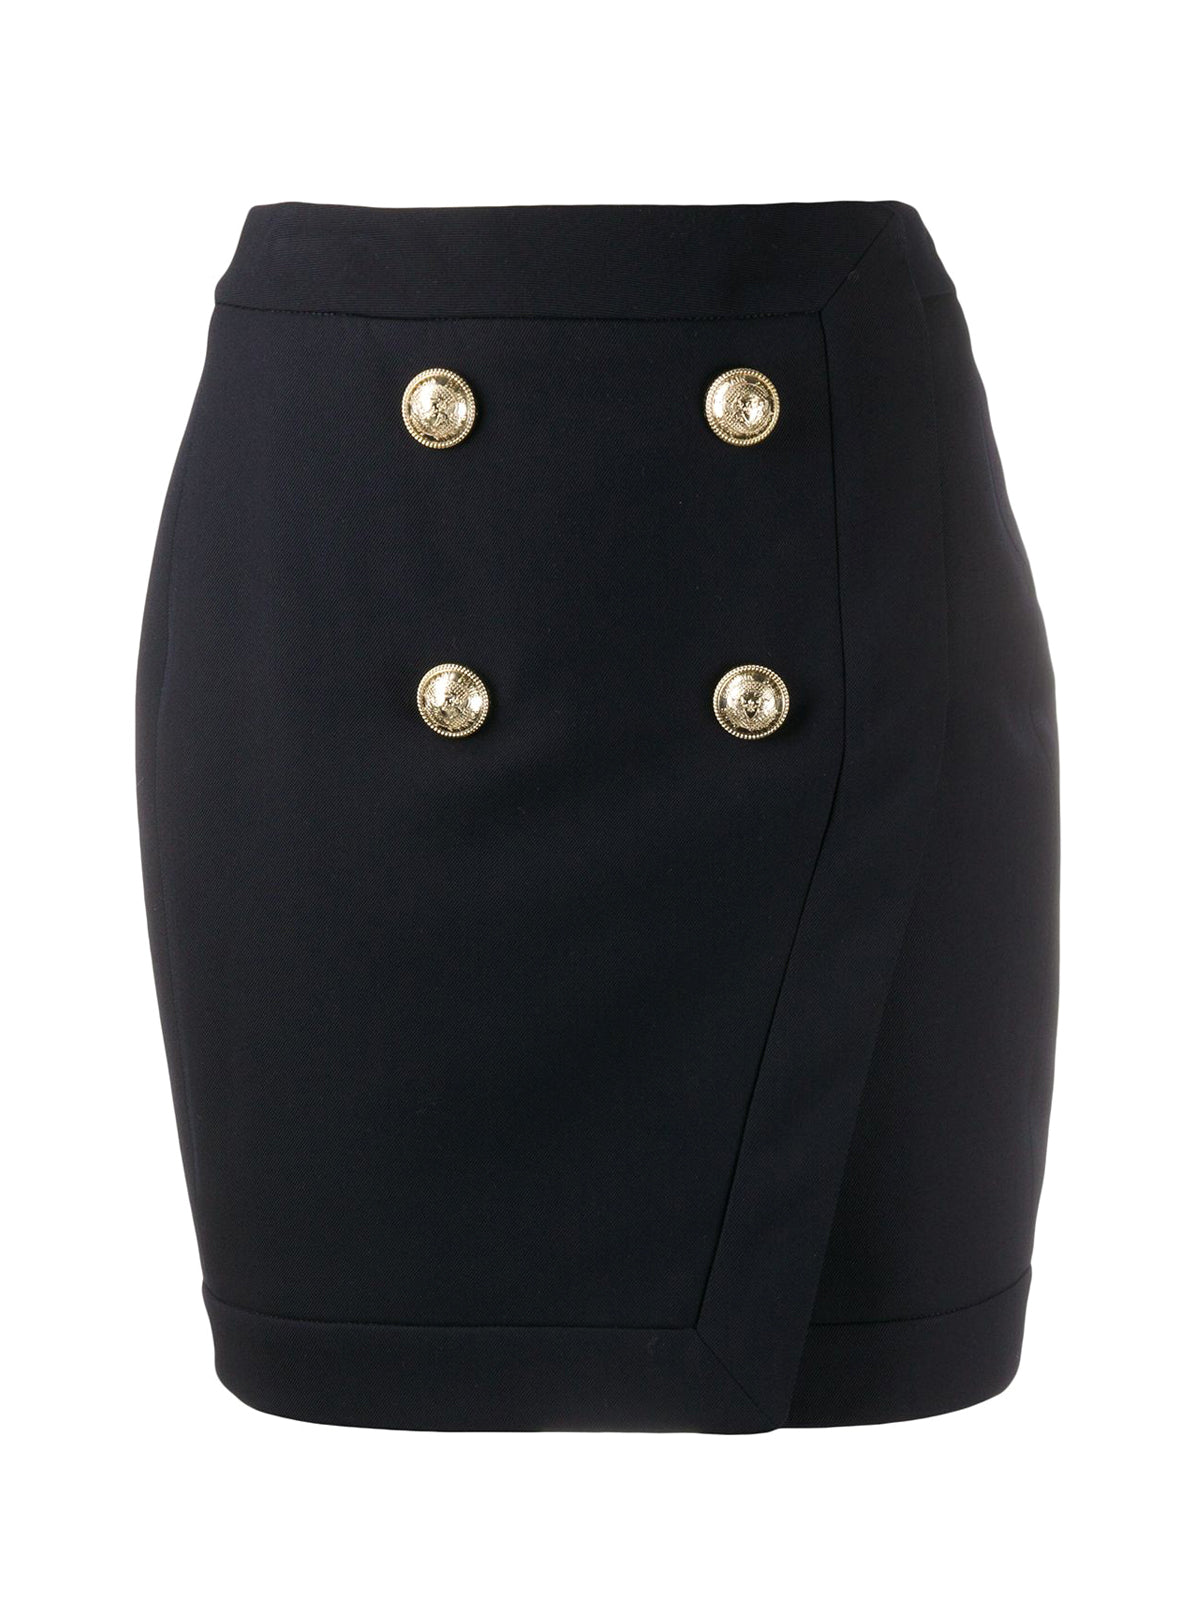 WRAP SKIRT WITH BUTTONS